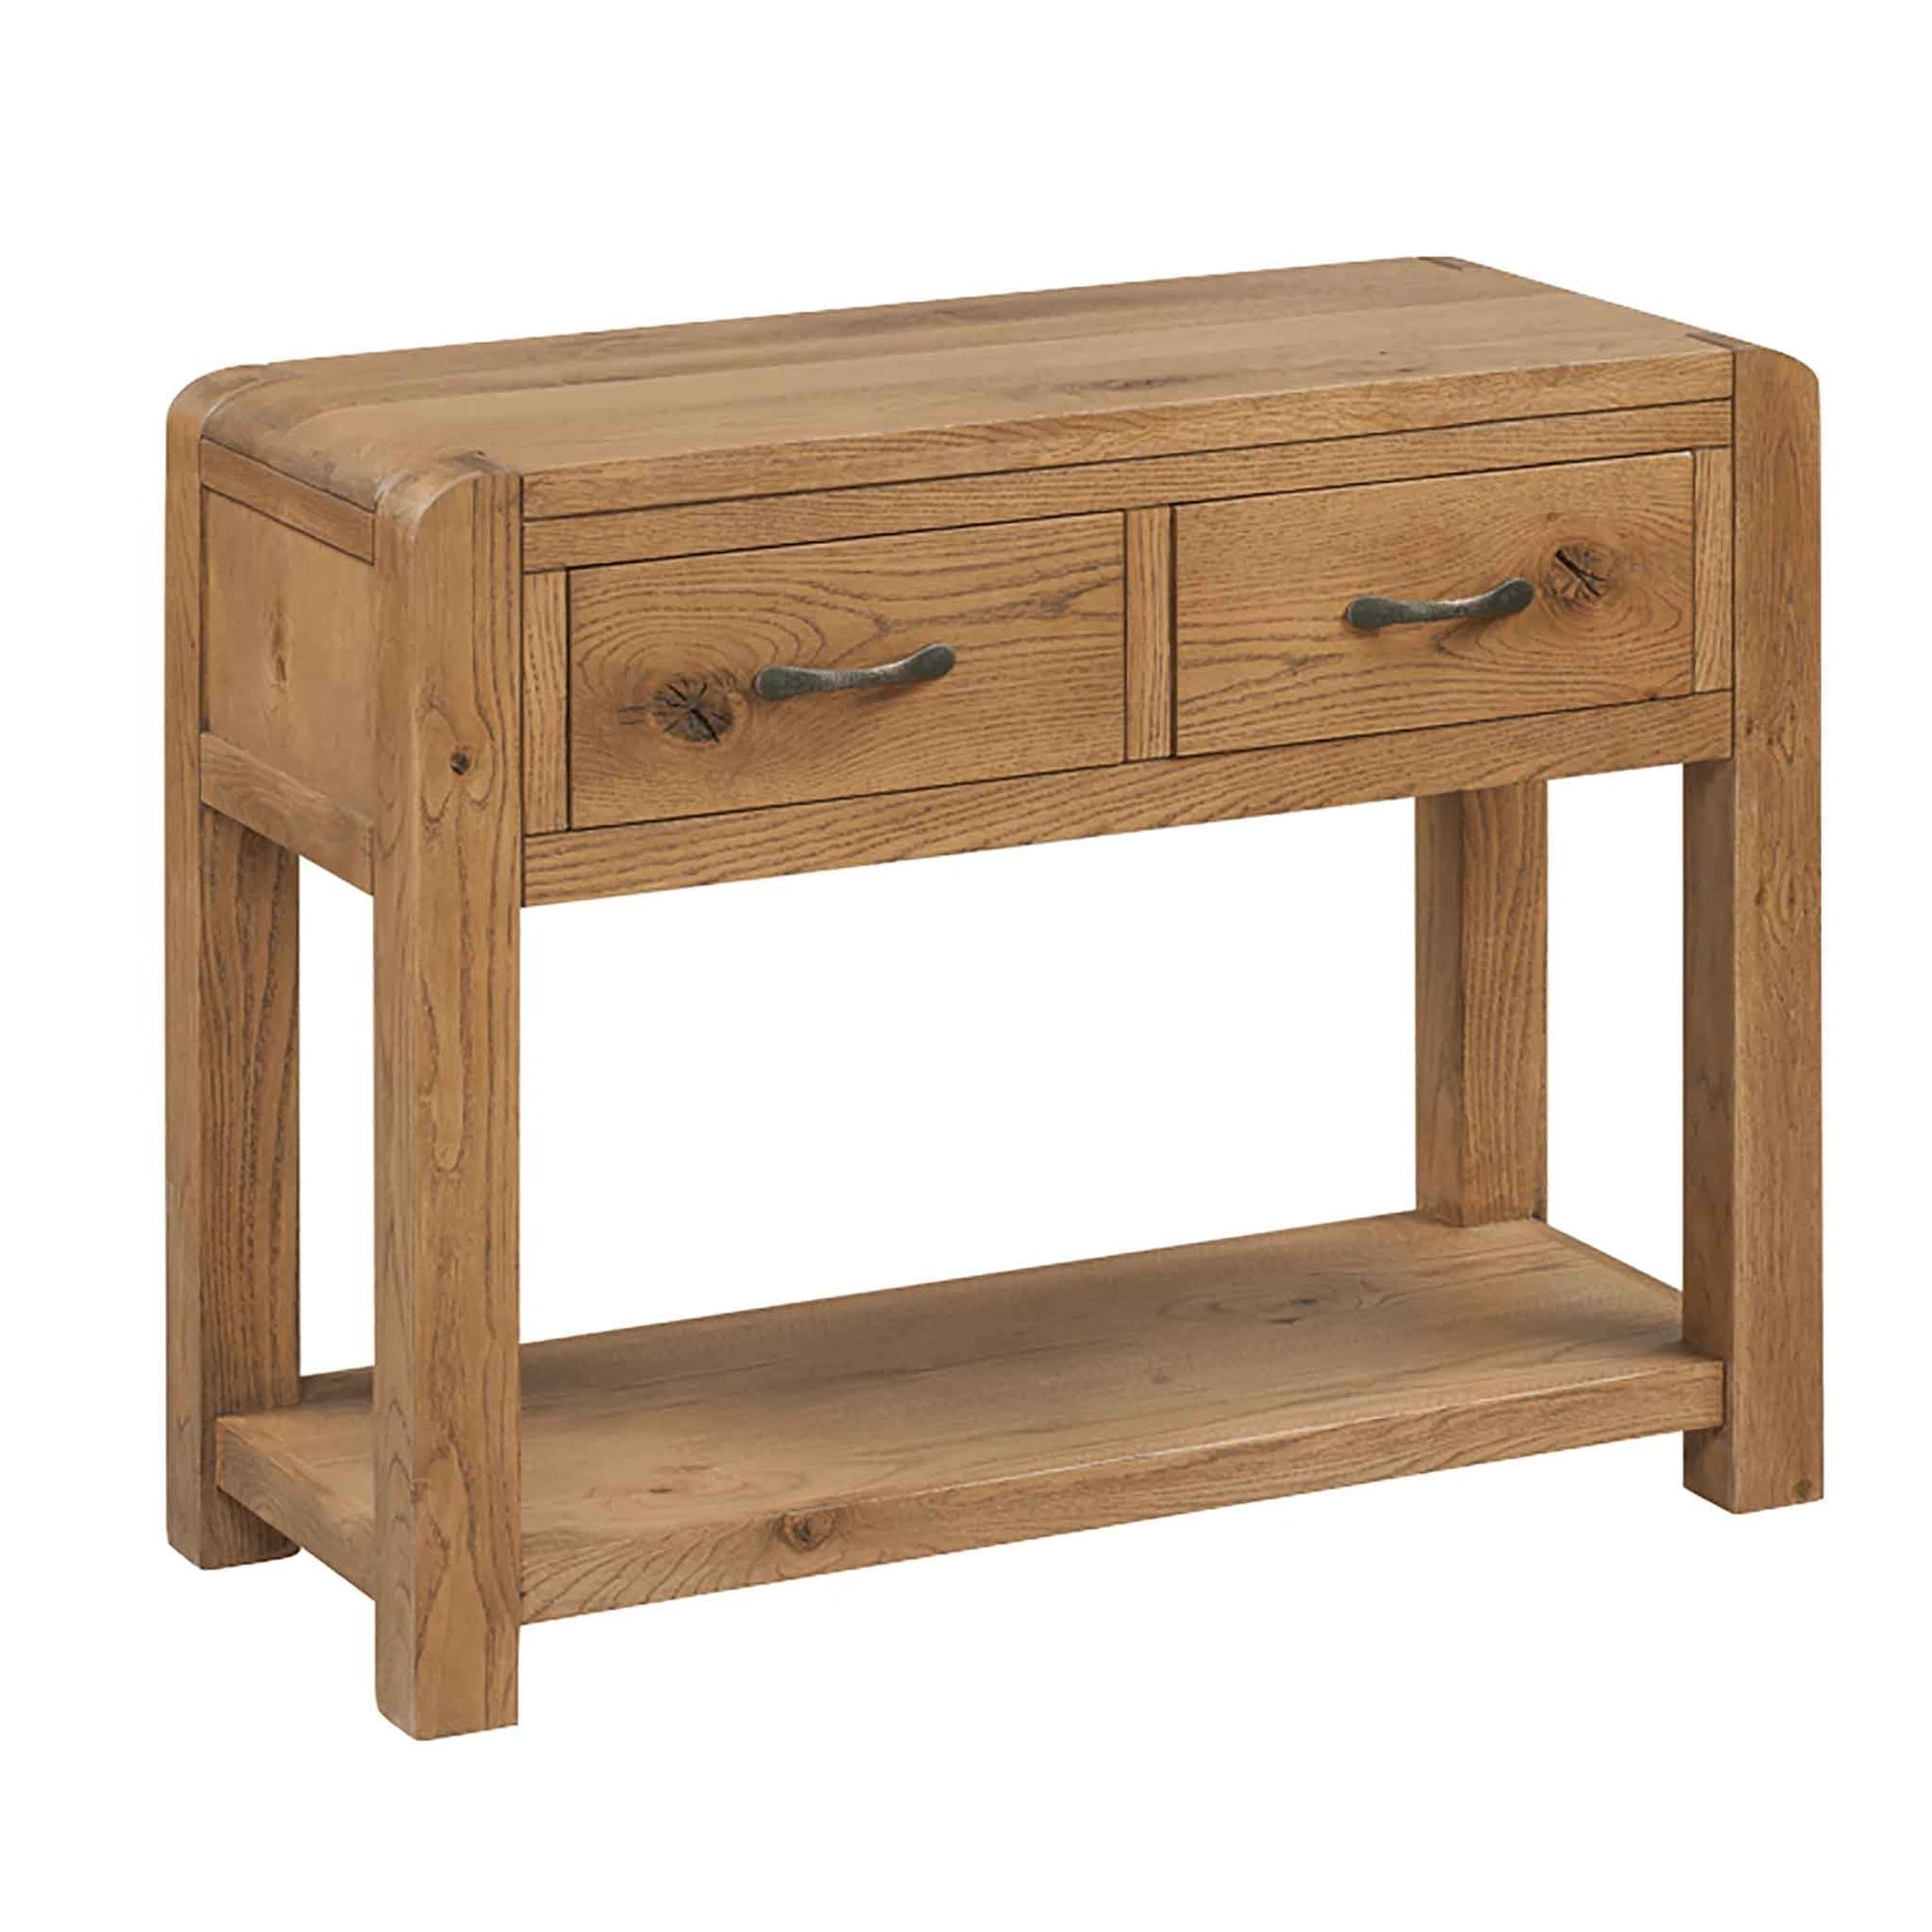 The Capri Oak Chunky Rustic Large Console Table with Drawers from Roseland Furniture